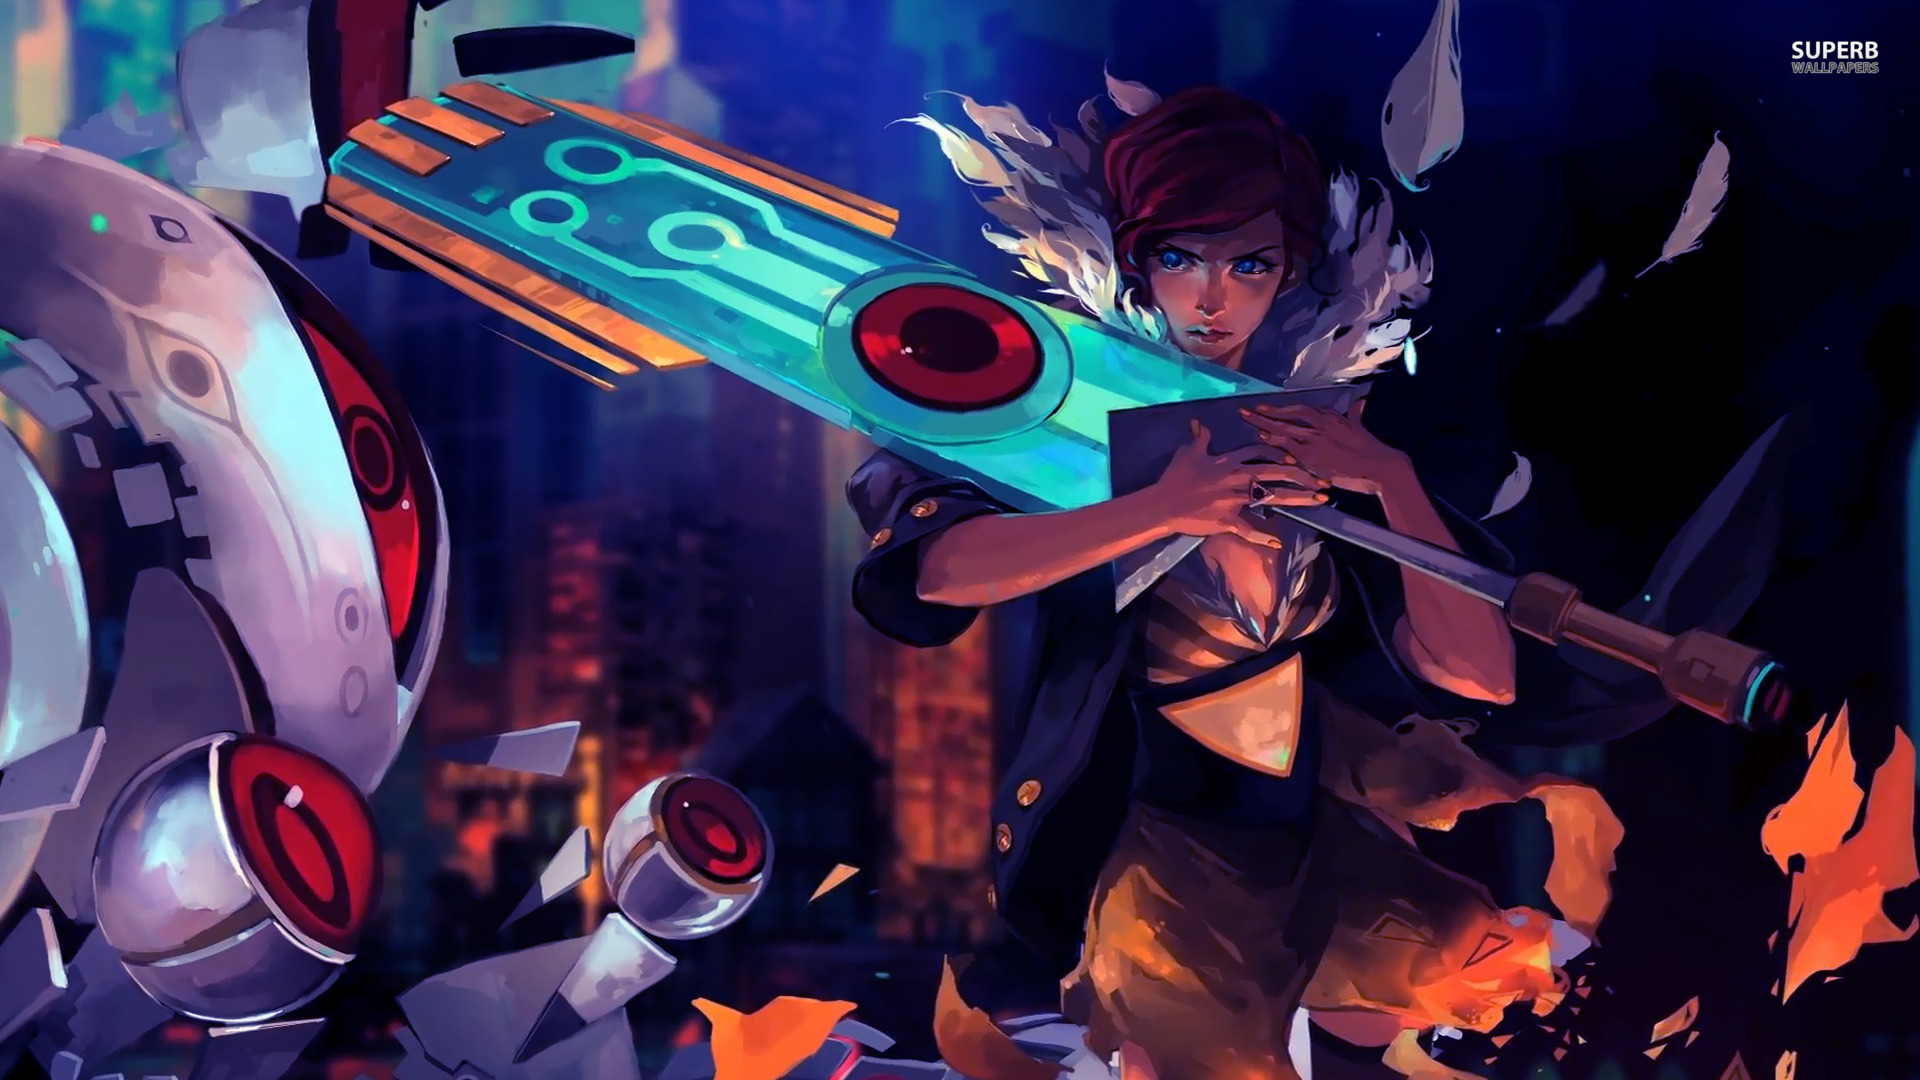 Transistor full hd wallpaper and background image - Full hd anime wallpaper pack ...